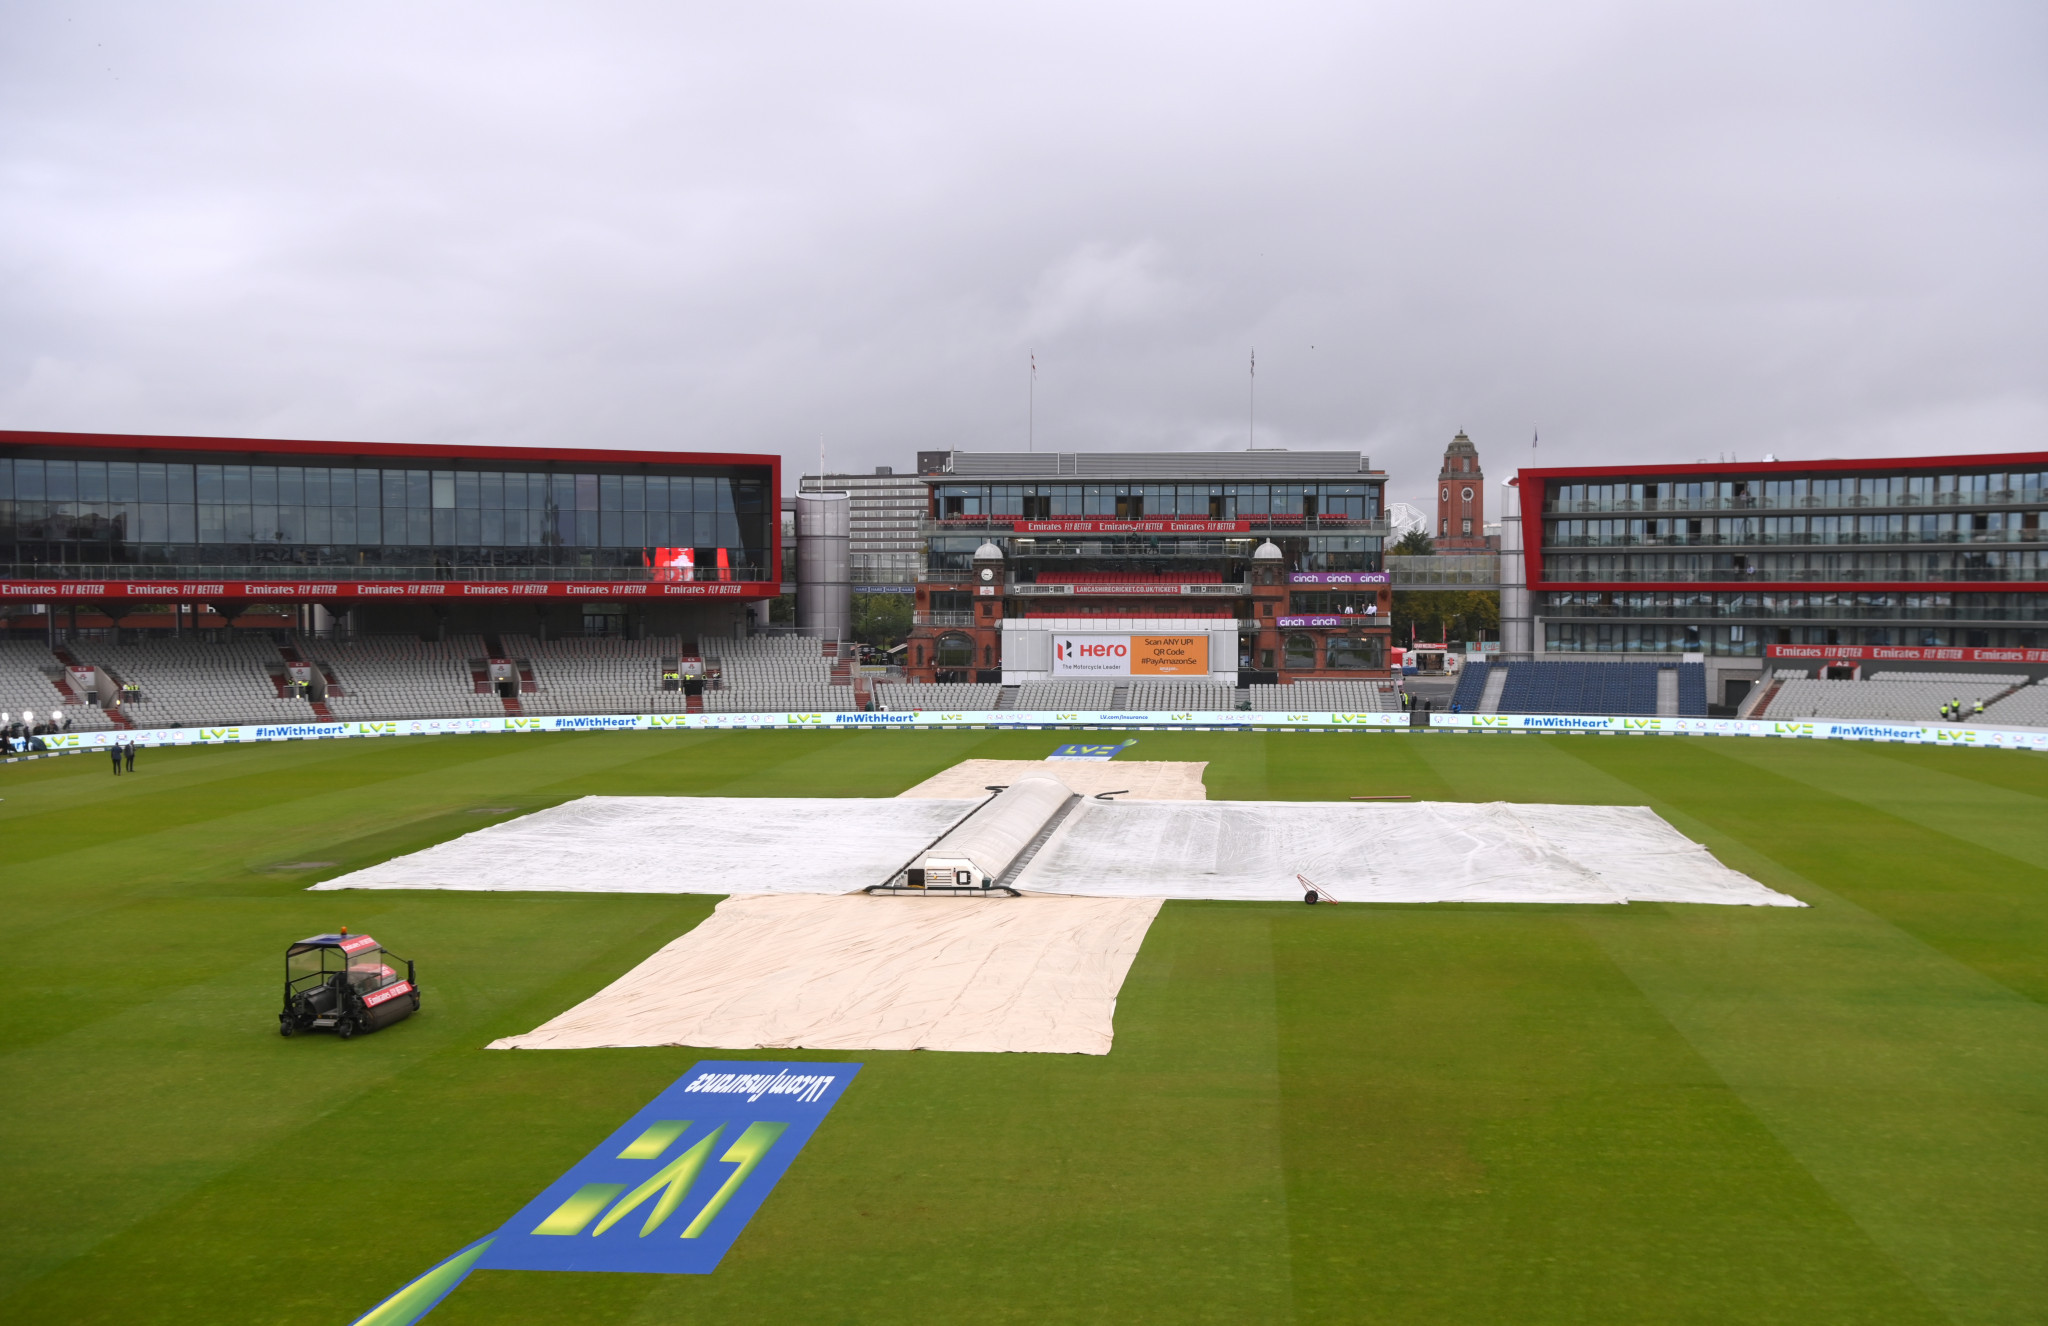 Fifth Test between England and India cancelled over visitors' COVID-19 outbreak